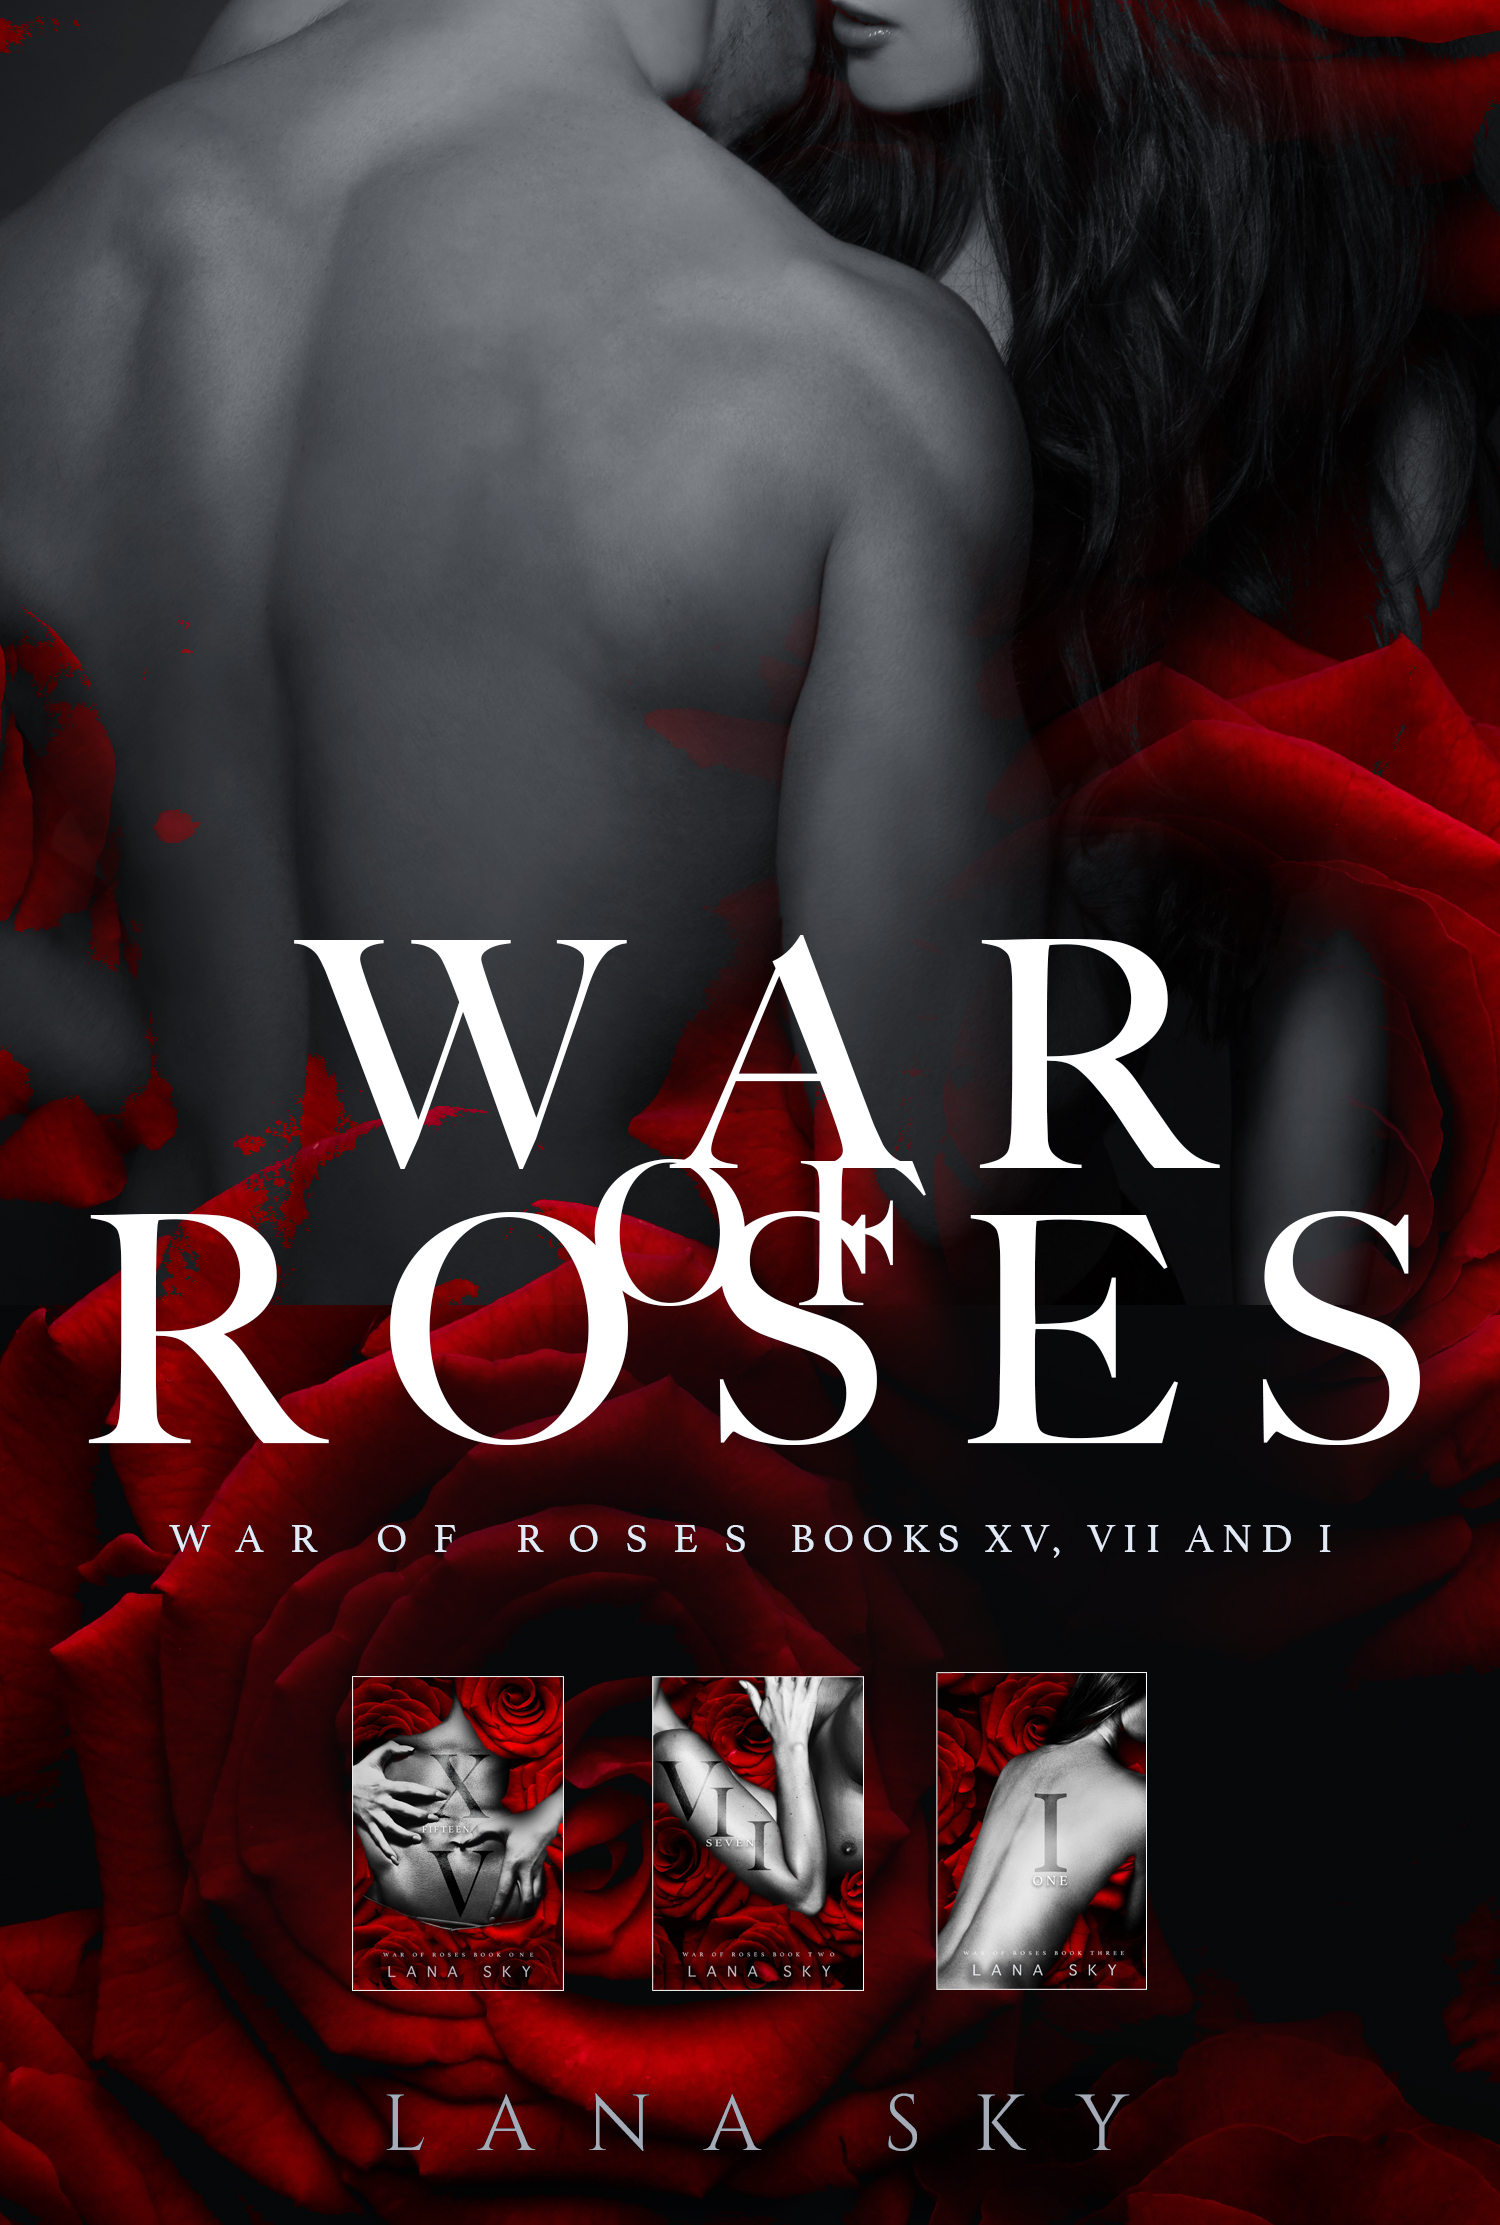 The Complete War of Roses Trilogy